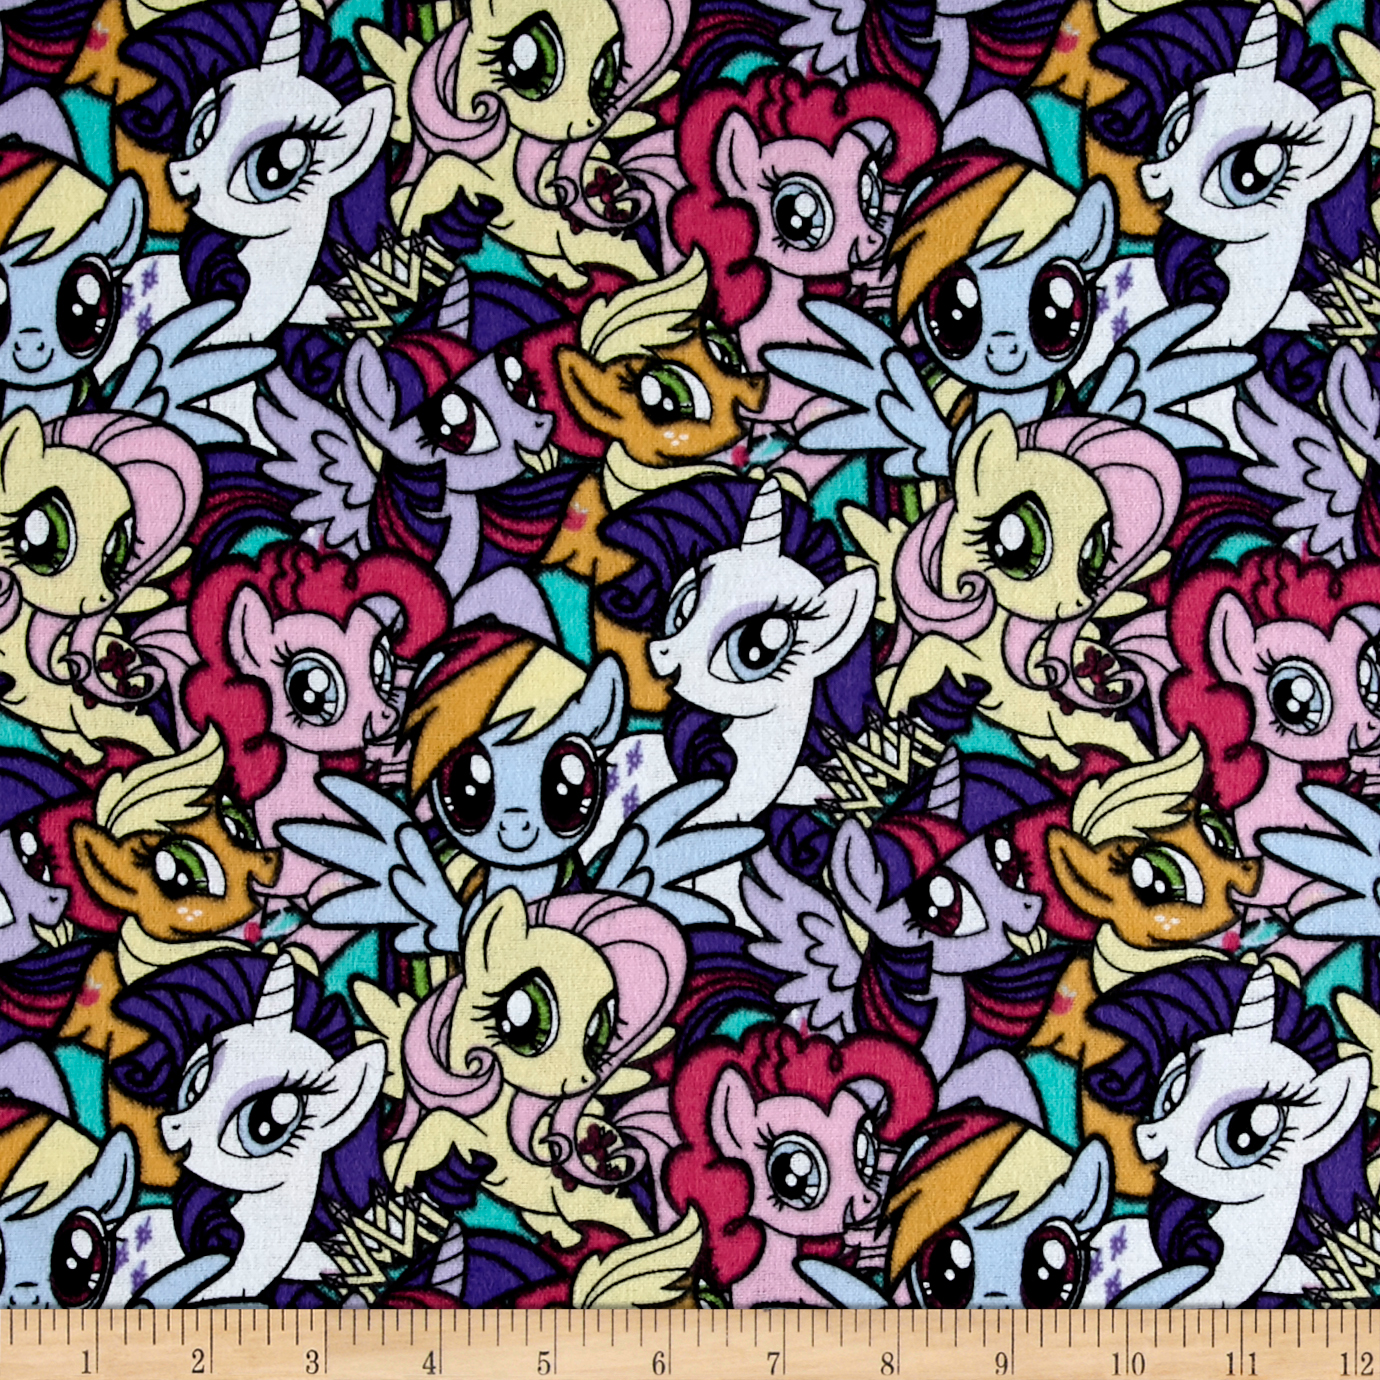 Hasbro My Little Pony Pack gang Flannel Multi Fabric by E. E. Schenck in USA